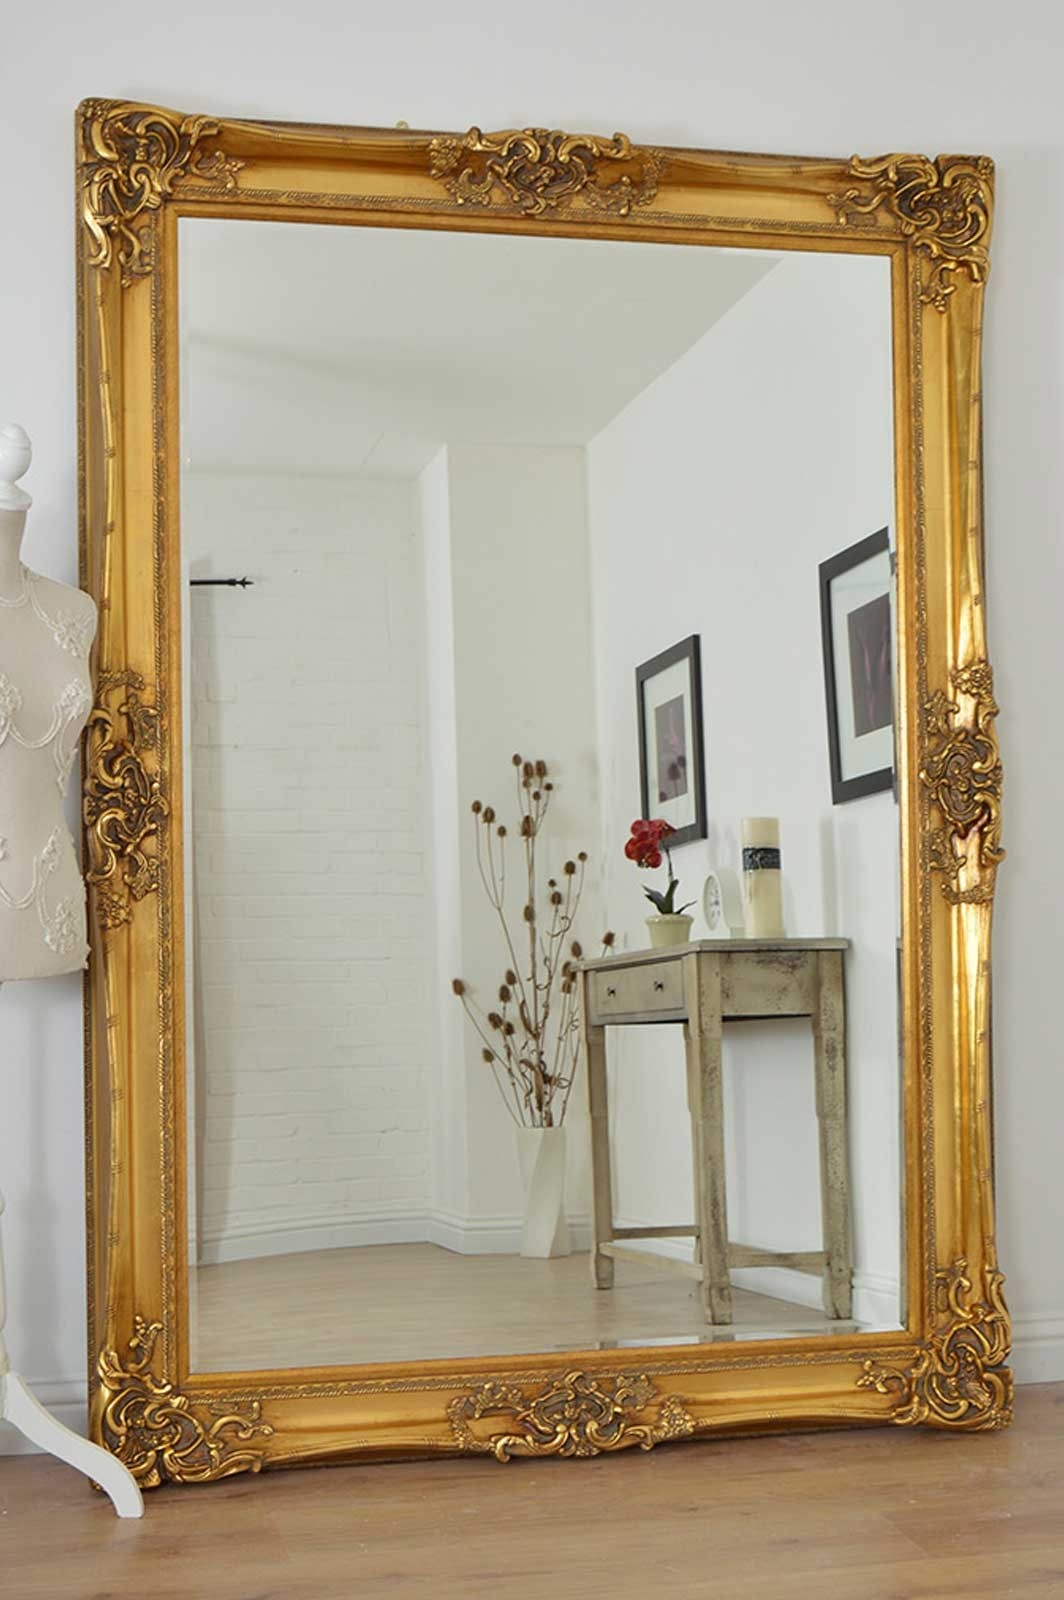 Mirroroutlet Shop For Large Mirrors Wall Mirrors Free Delivery Intended For Rococo Mirrors Cheap (Image 11 of 15)